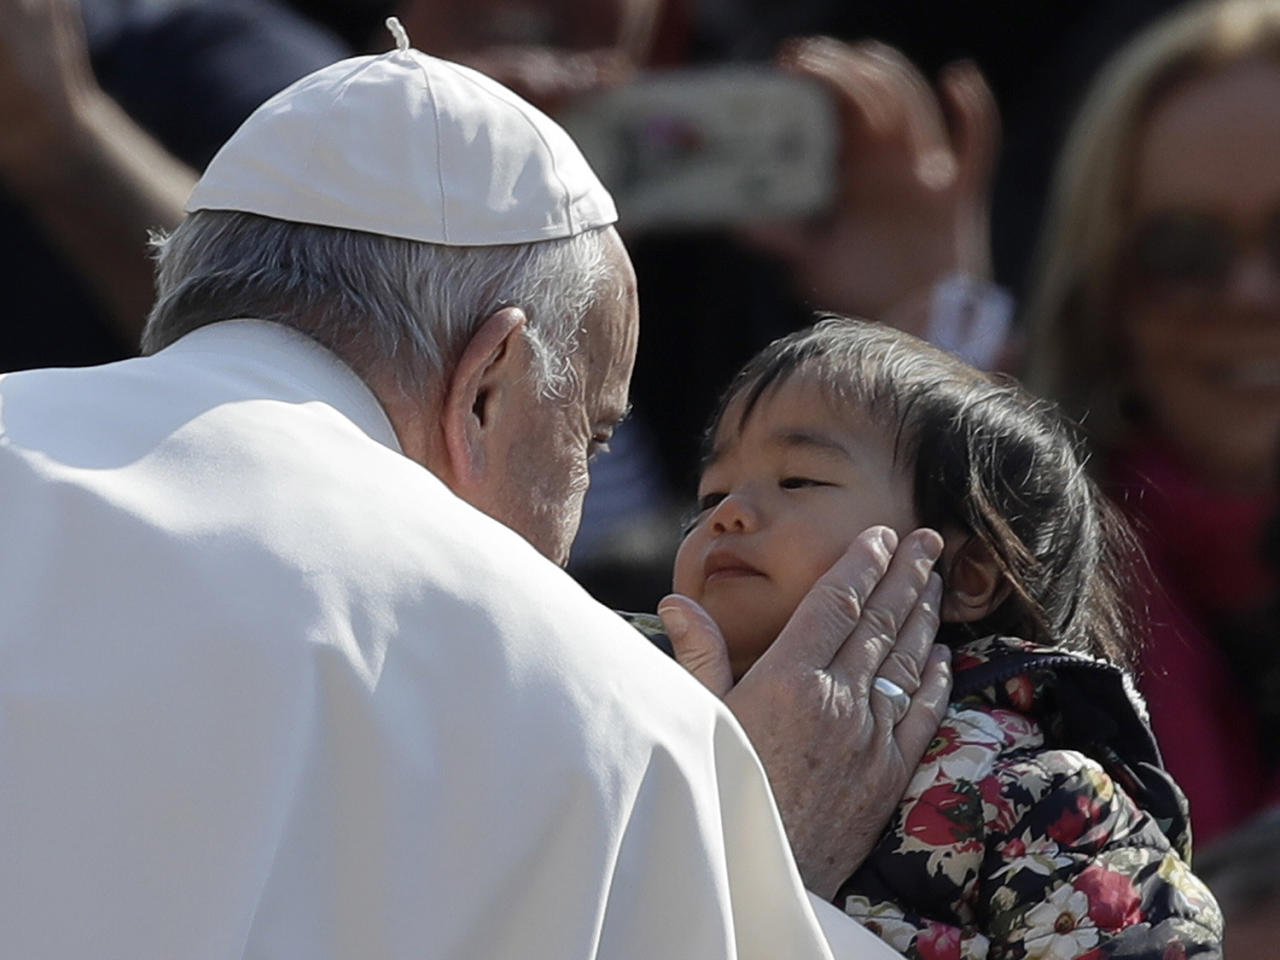 <p>Pope Francis carresses a child as he tours through the crowd in St. Peter's Square during his weekly general audience, at the Vatican, April 5, 2017. (Photo: Alessandra Tarantino/AP) </p>